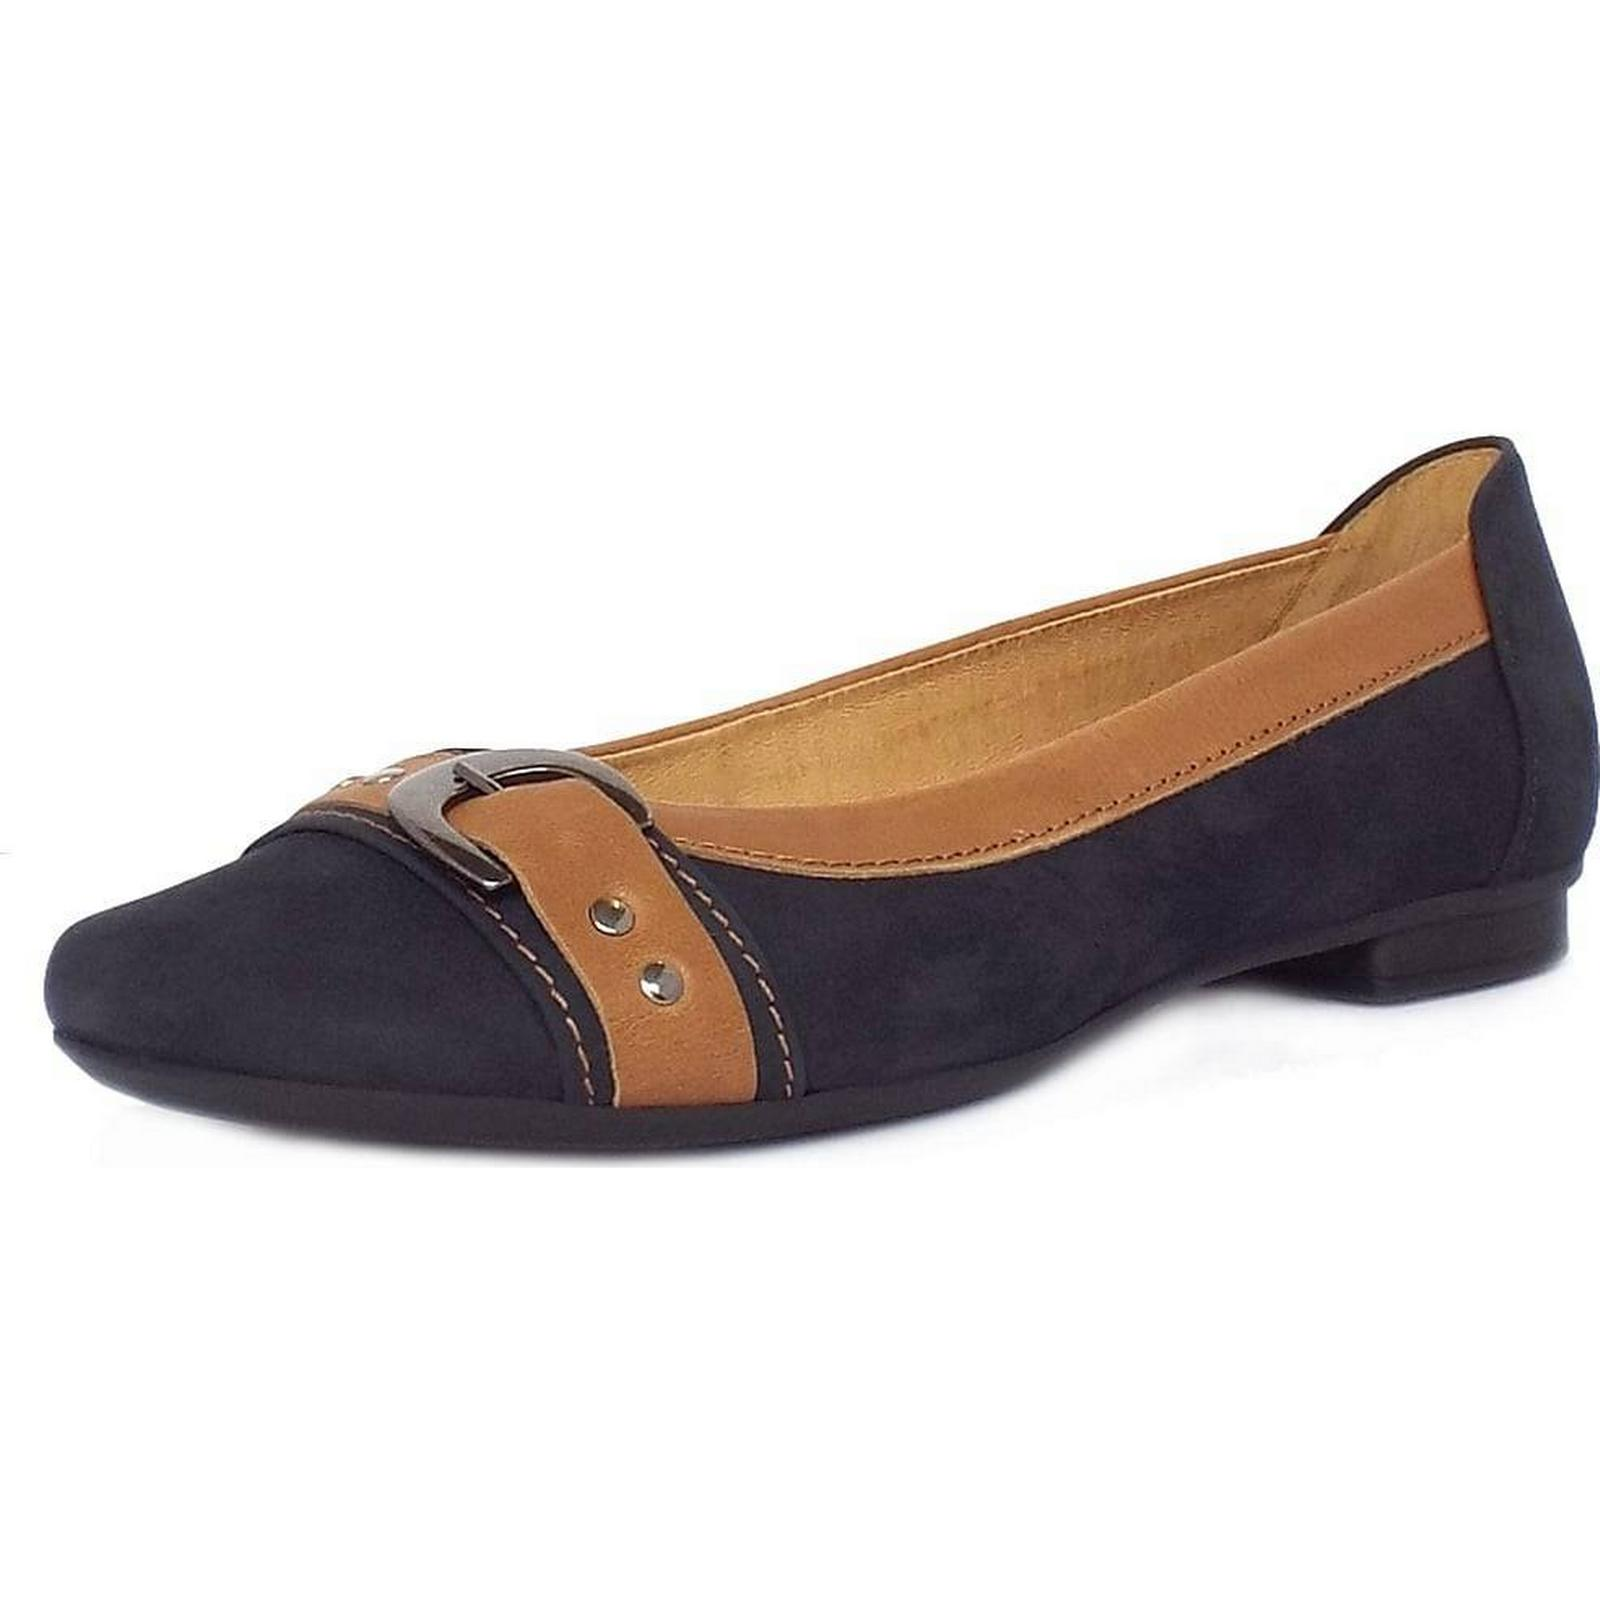 Gabor INDIANA INDIANA GABOR LADIES SHOES INDIANA Gabor Colour: NIGHT BLUE, Size: 6 319bdd